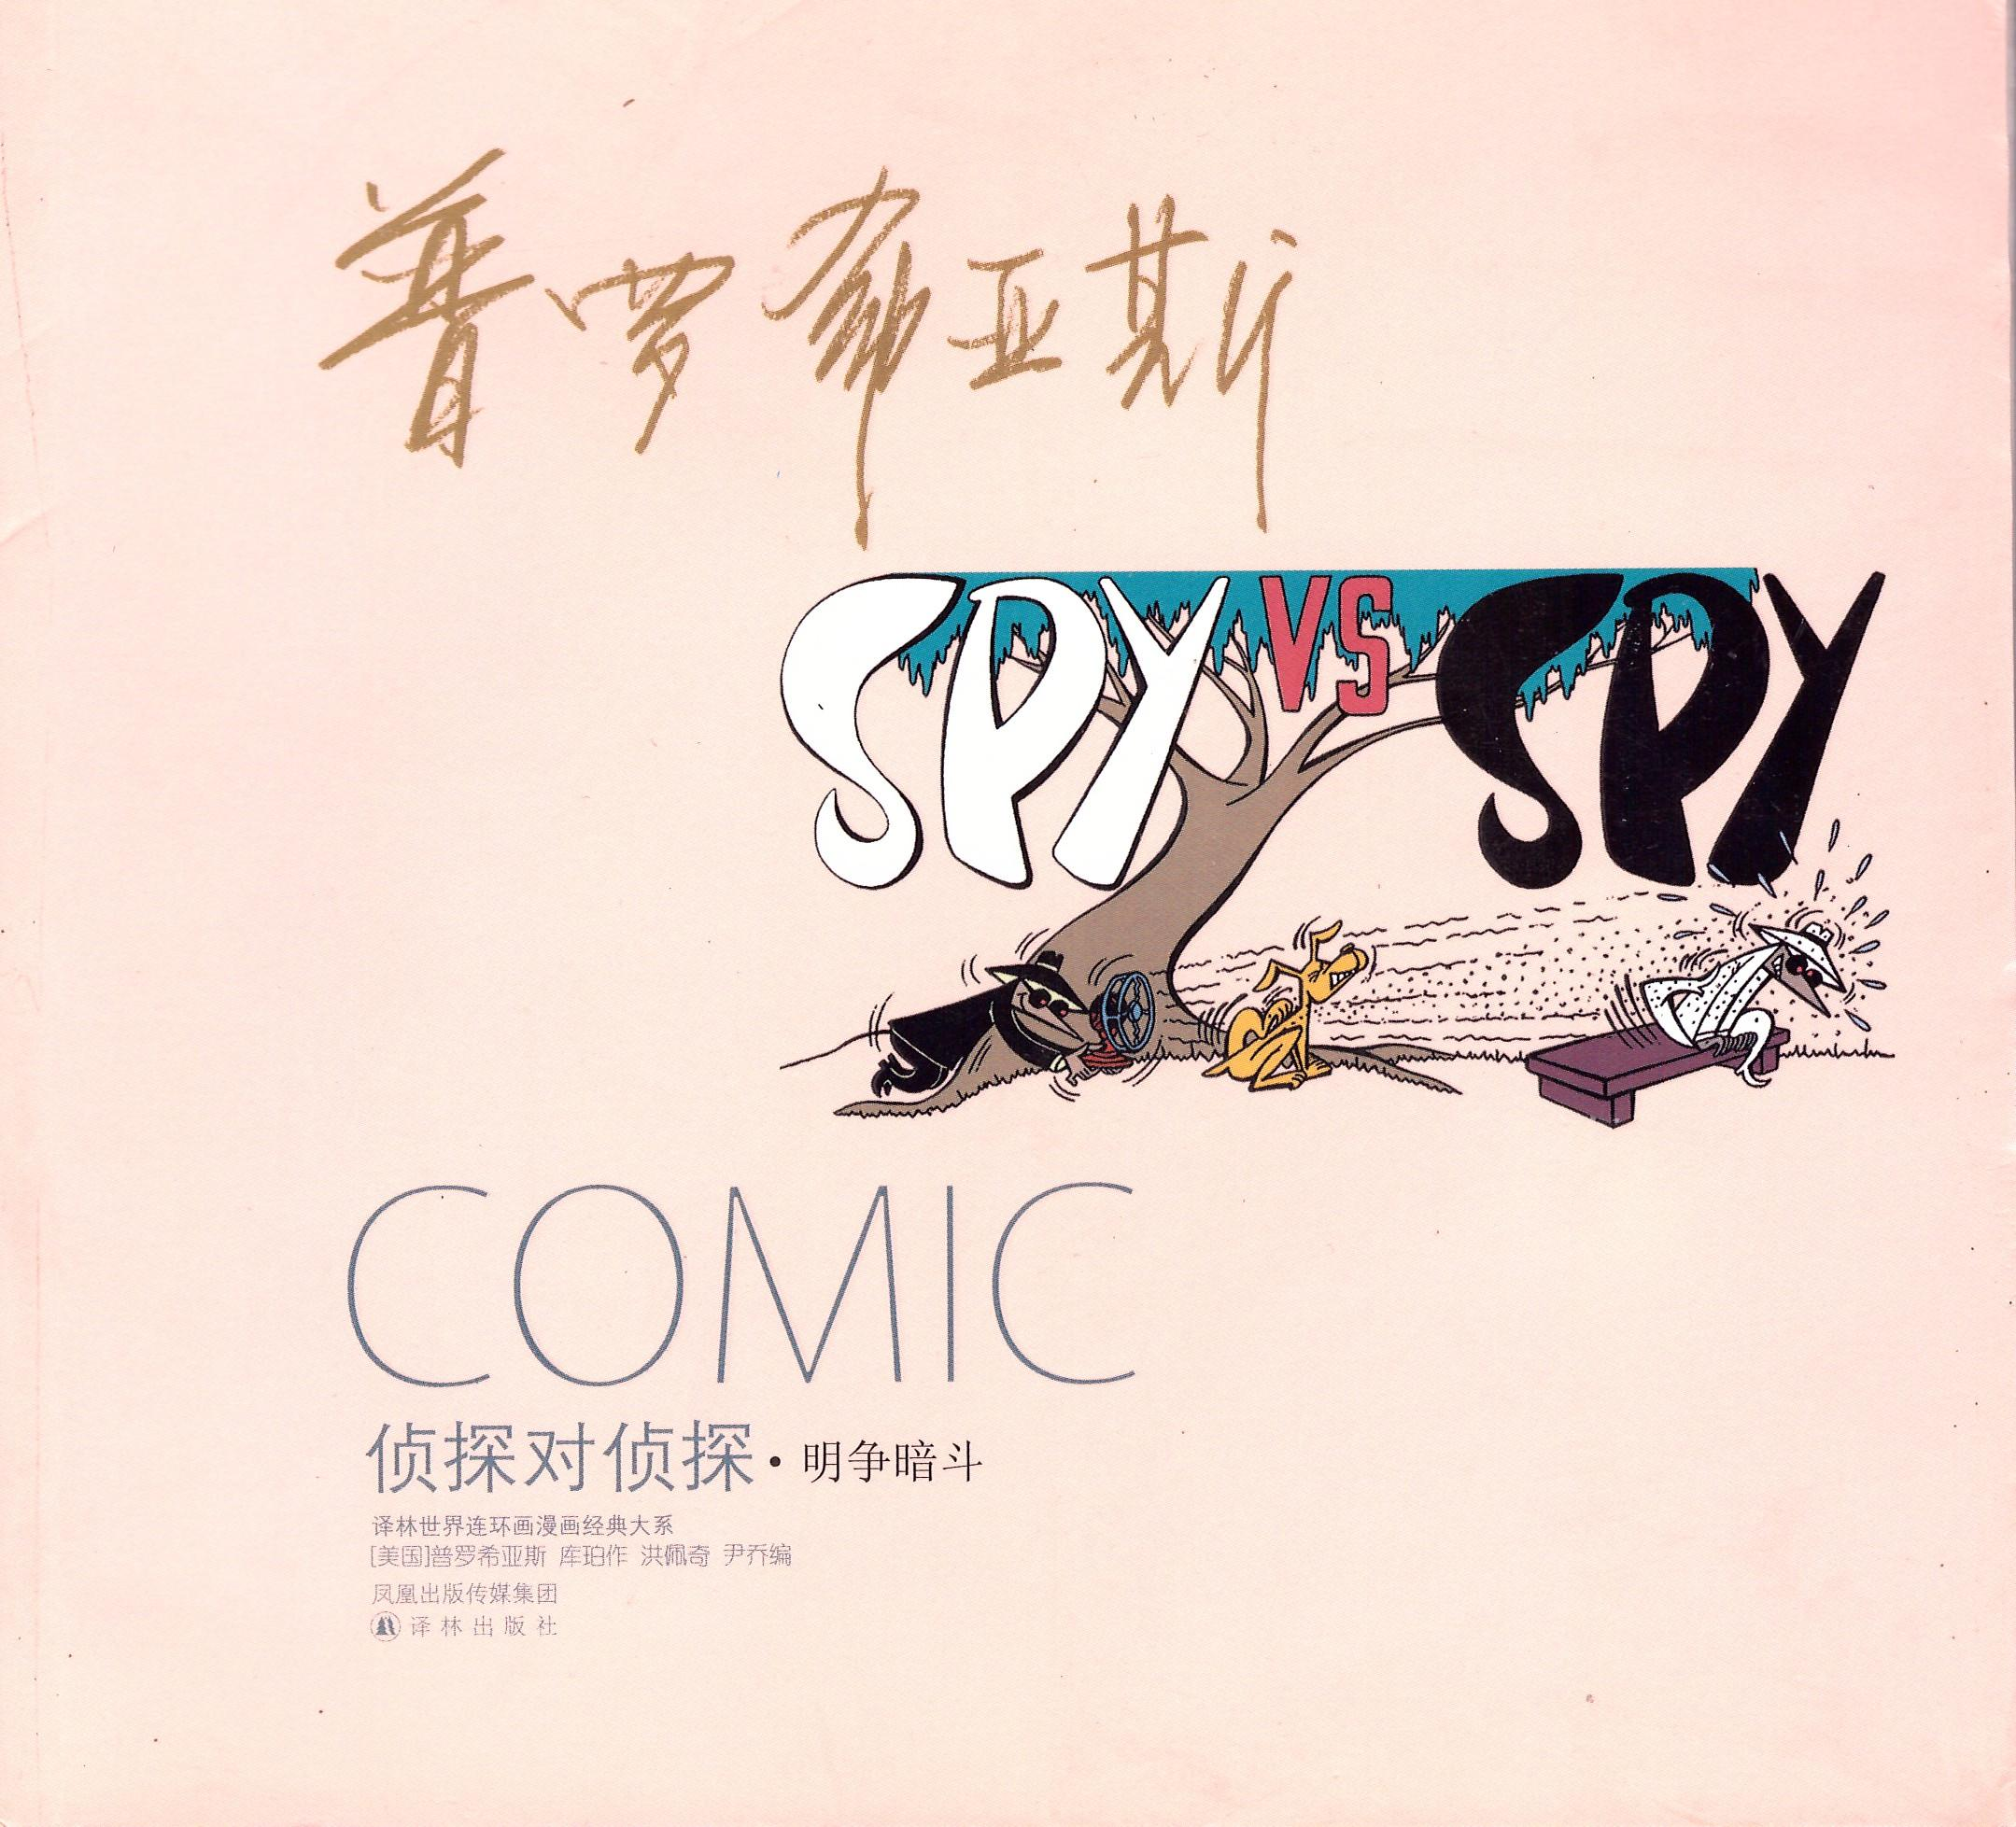 Chinese Spy vs Spy Comic 'Infighting' • China